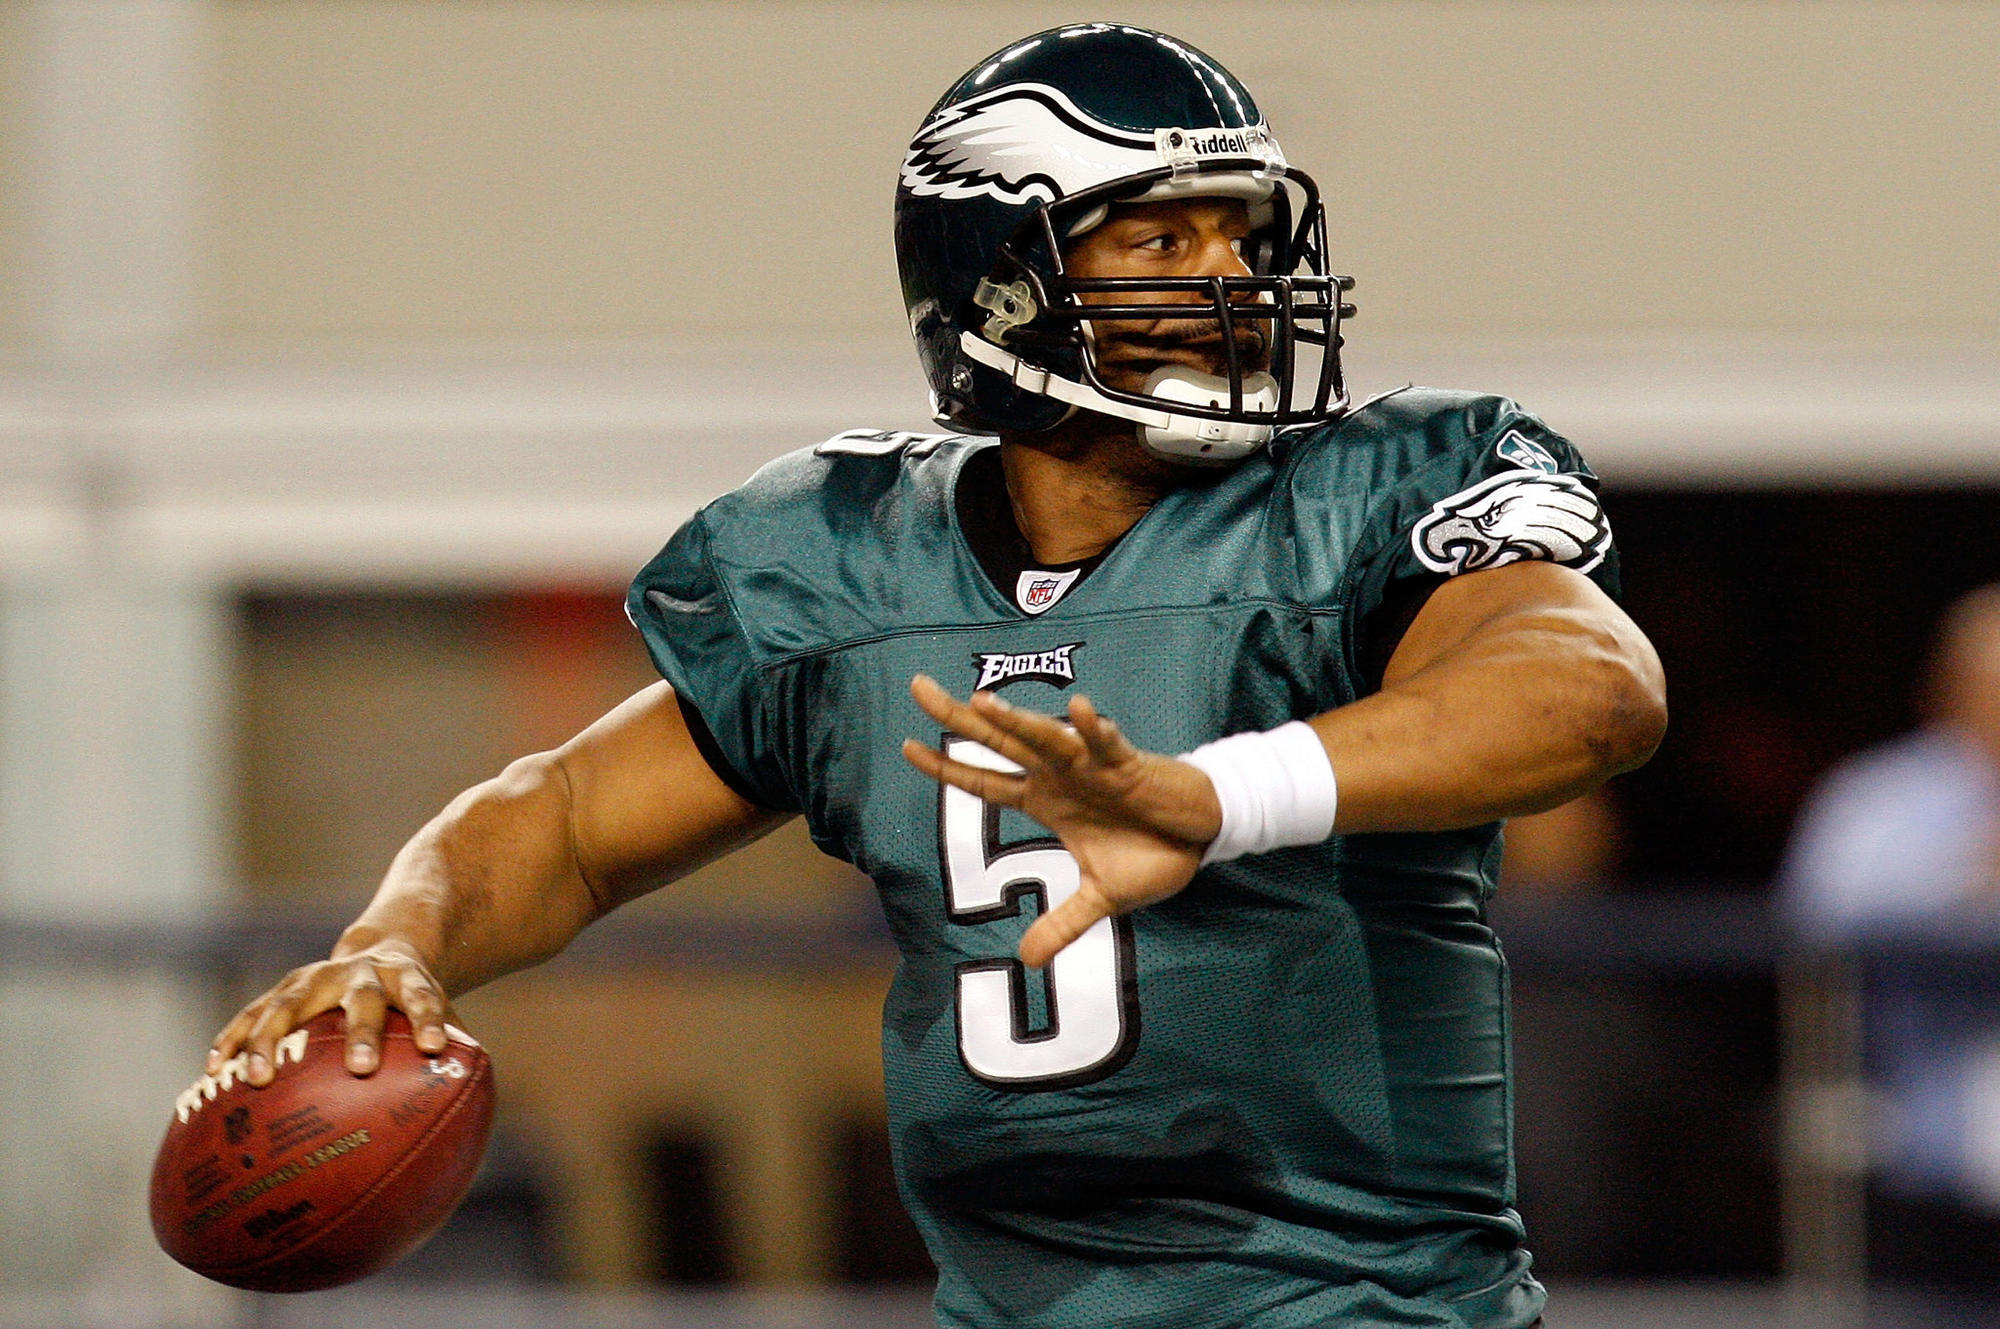 Morning Briefing: Donovan McNabb's Hall of Fame argument doesn't add up